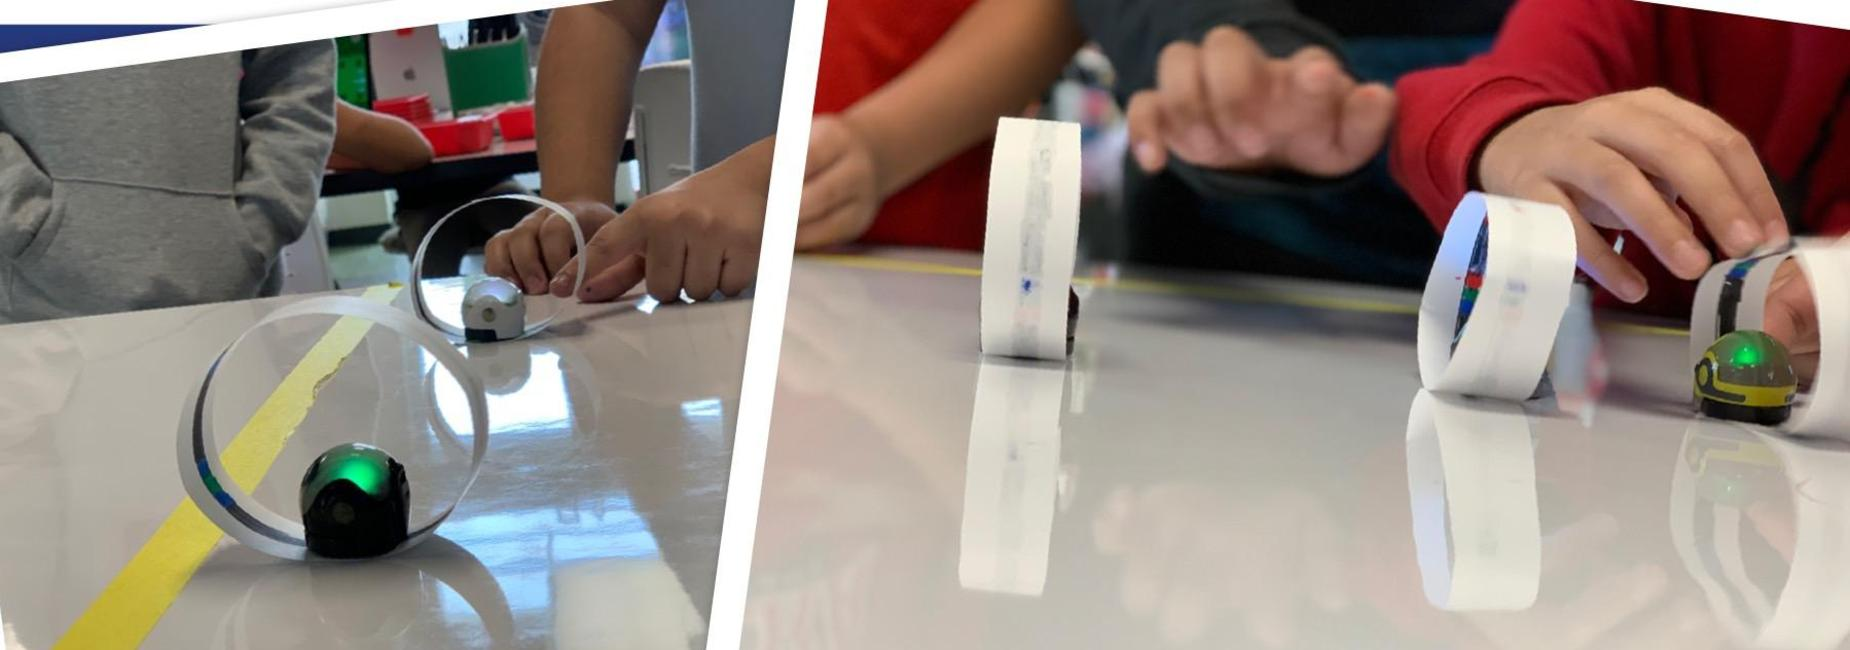 Ozobots in the Innovation Lab.